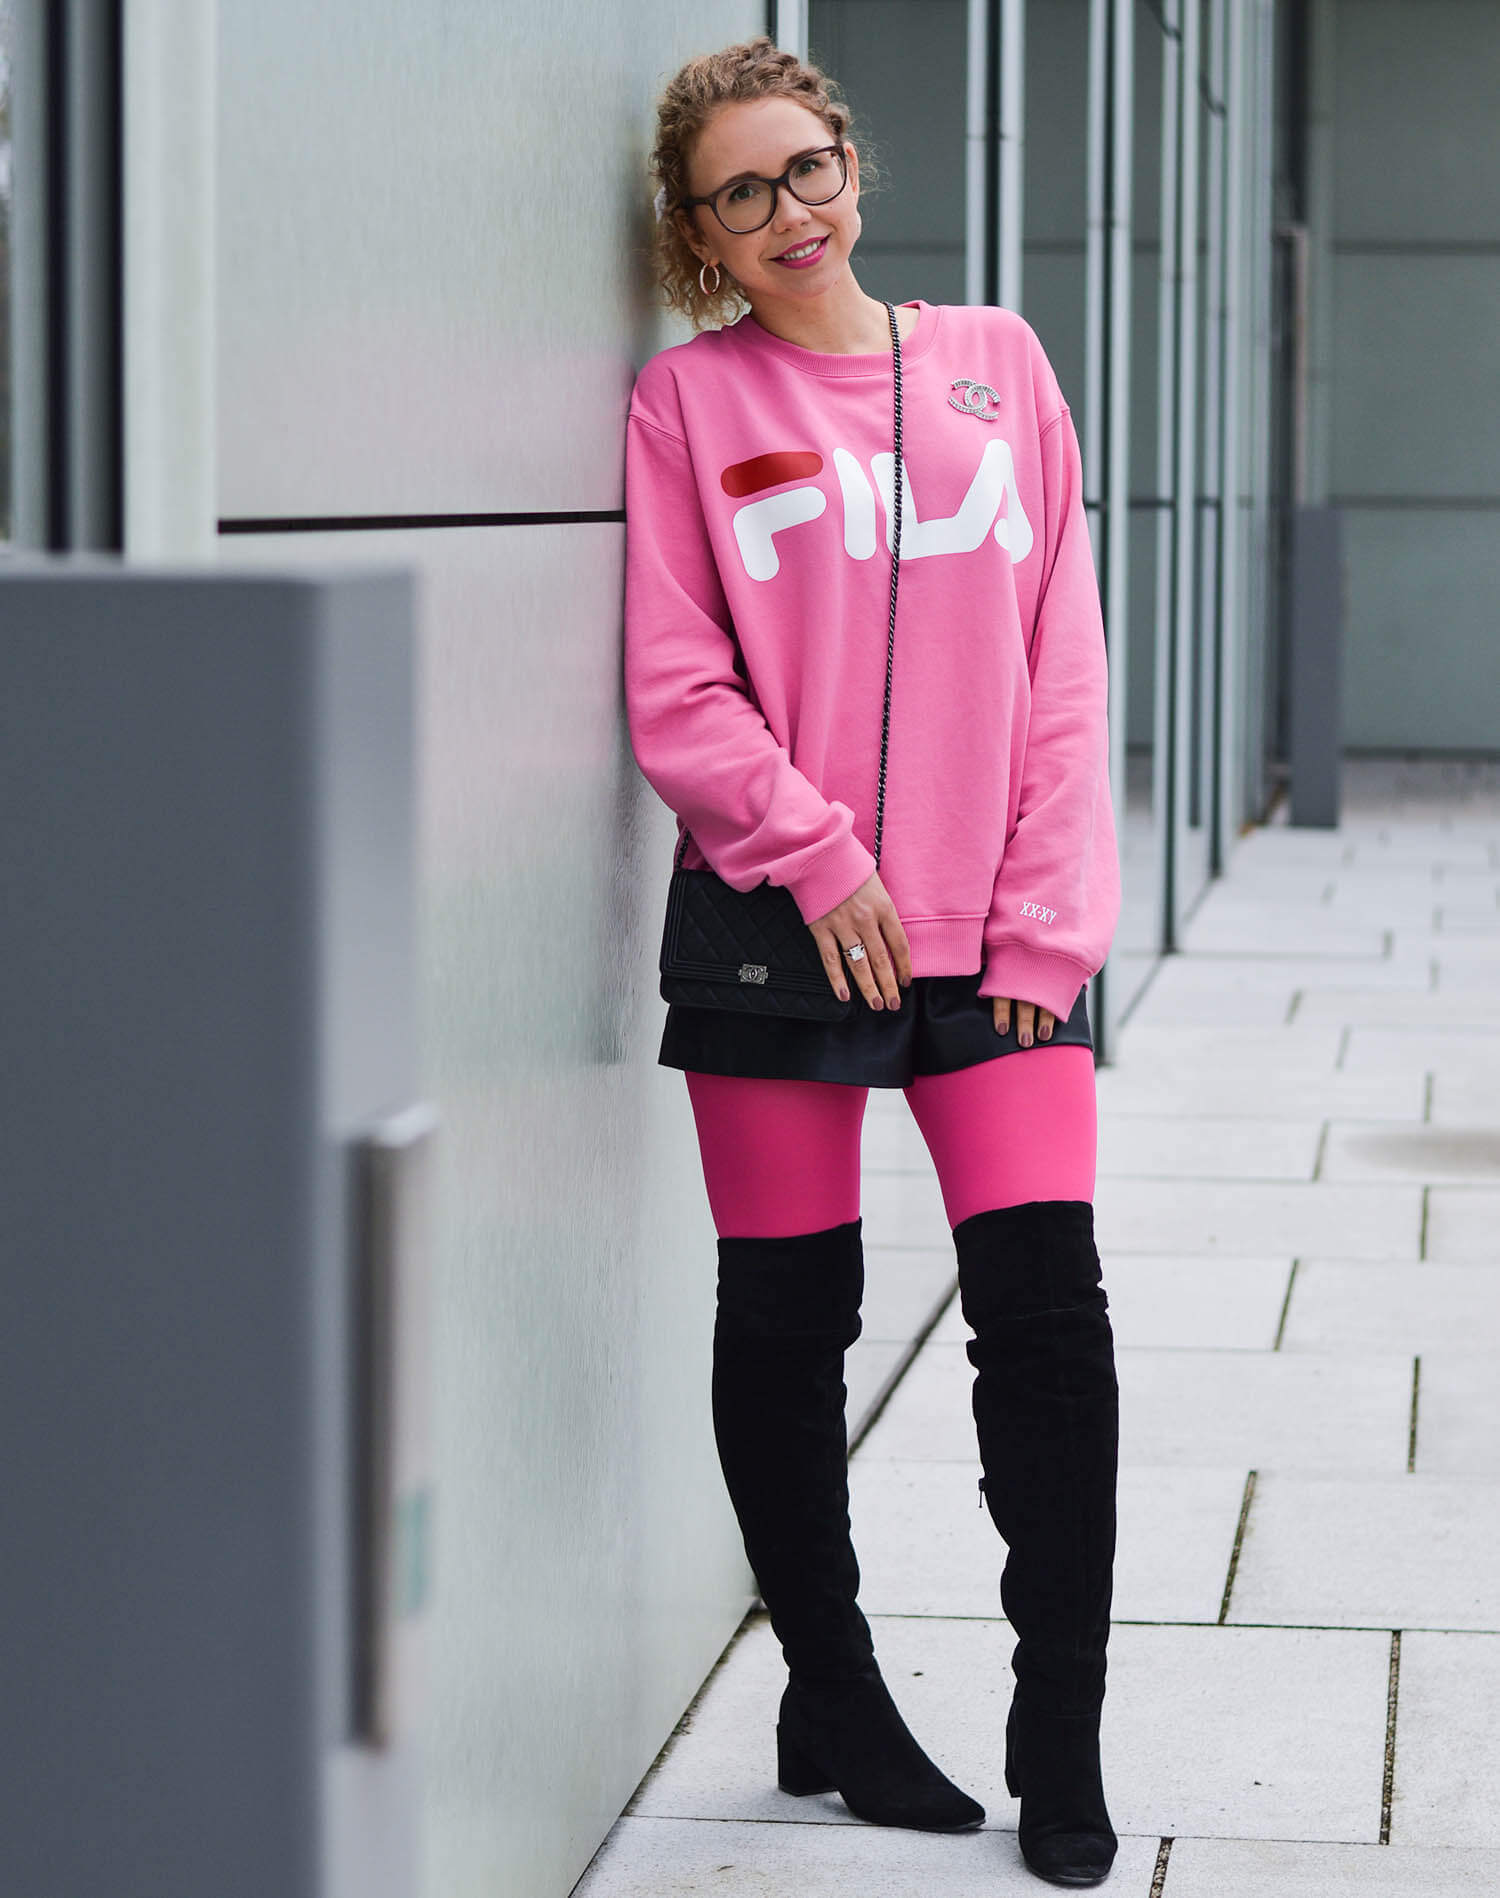 Kationette-fashionblogger-nrw-Outfit-90s-Comeback-with-Pink-Logo-Sweater-Neon-Tights-and-Overknees-chanel